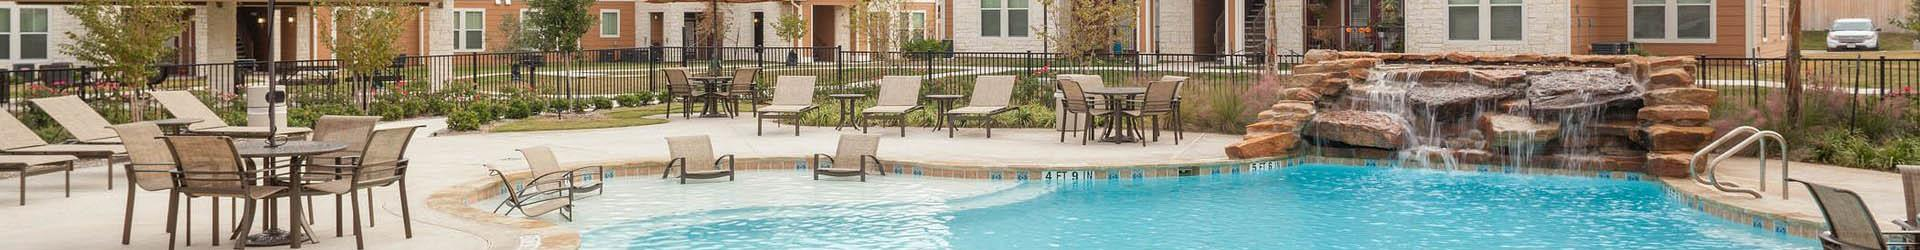 Contact Parkway Grande for information about our apartments in San Marcos